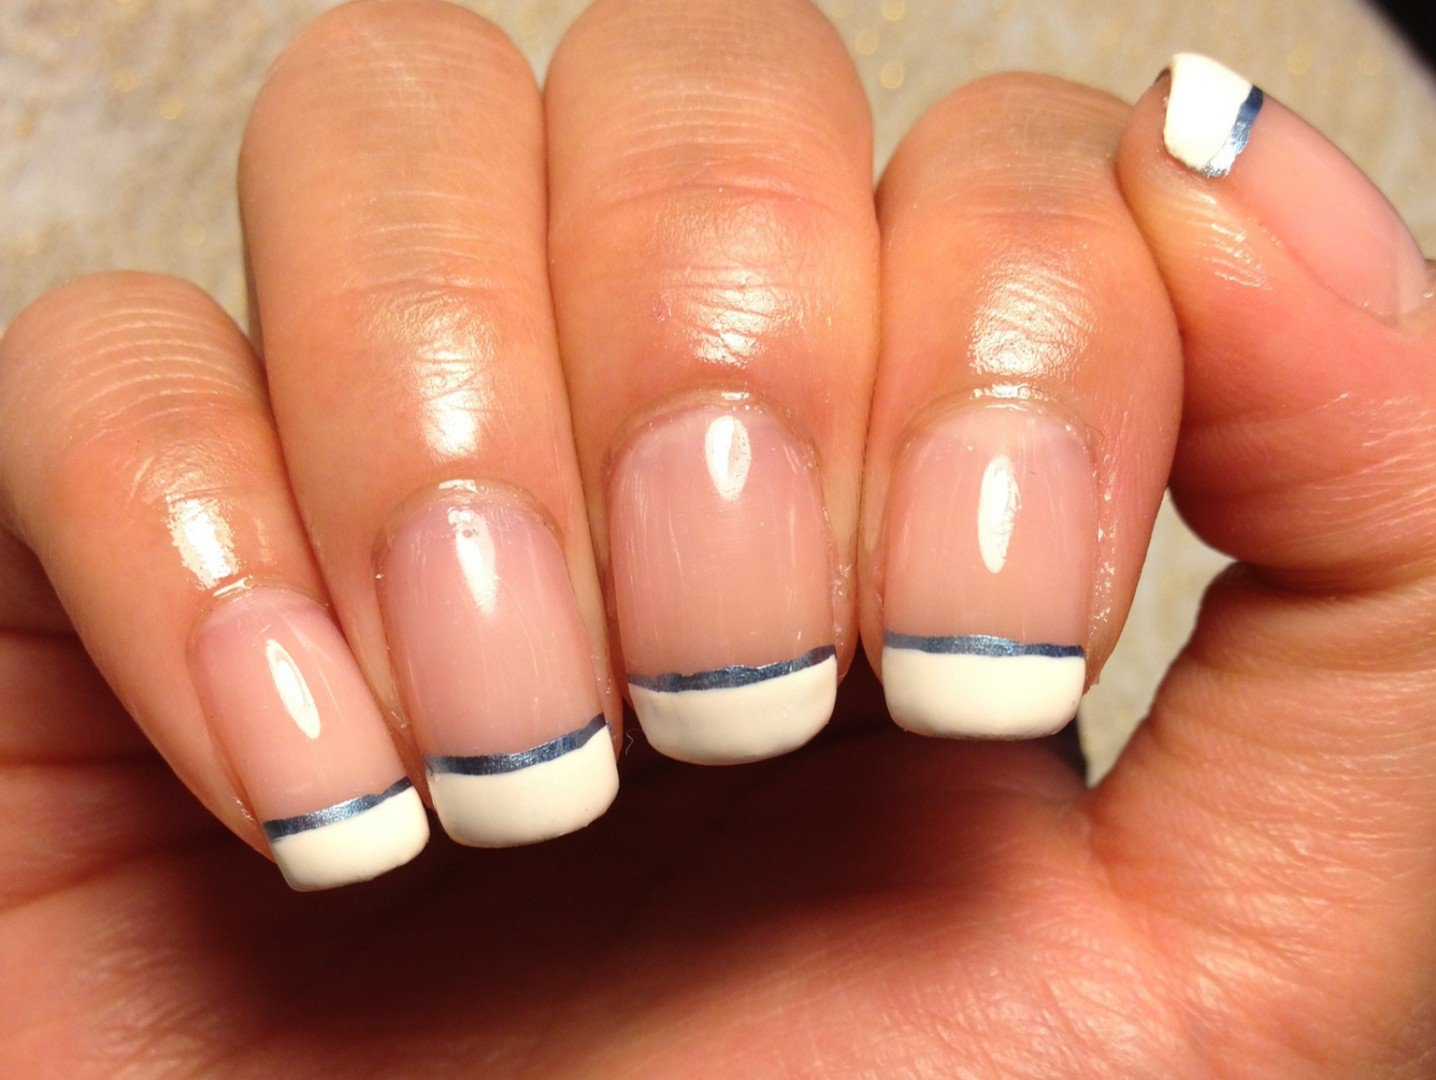 French Manicure with Metallic Blue - FMag.com